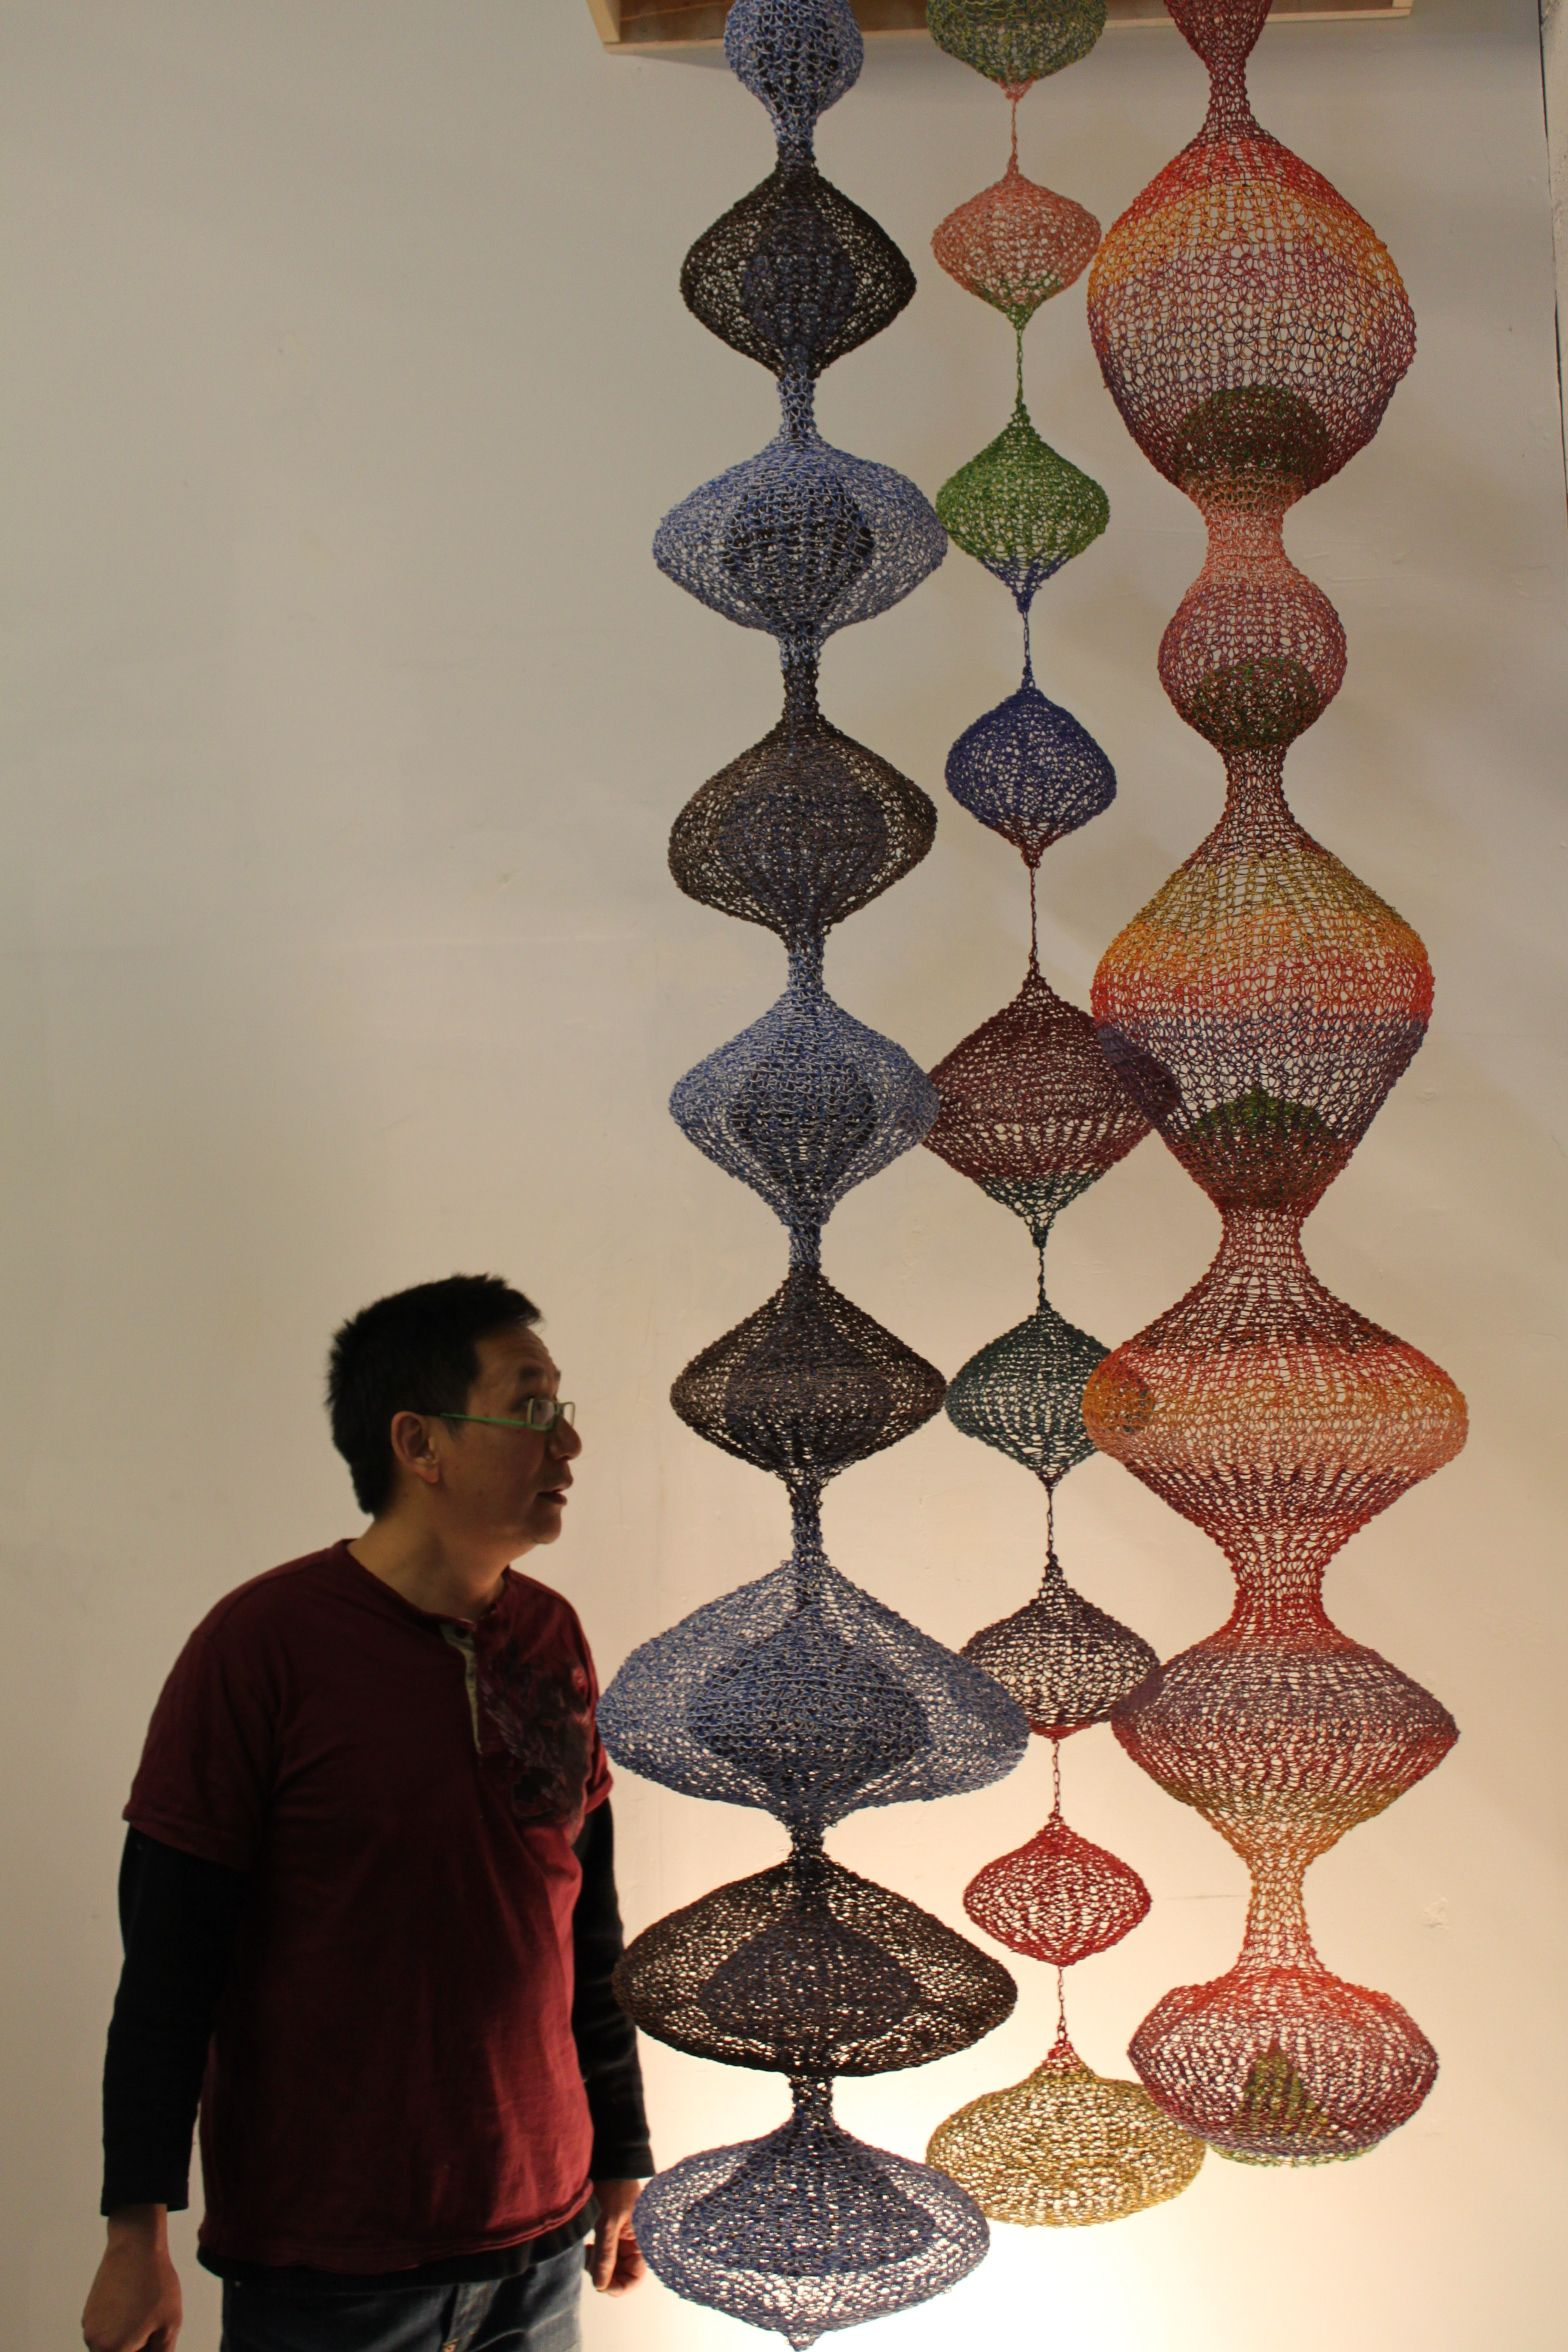 Tuan & Long Hanging Wire Sculptures, Made From Recycled Telephone